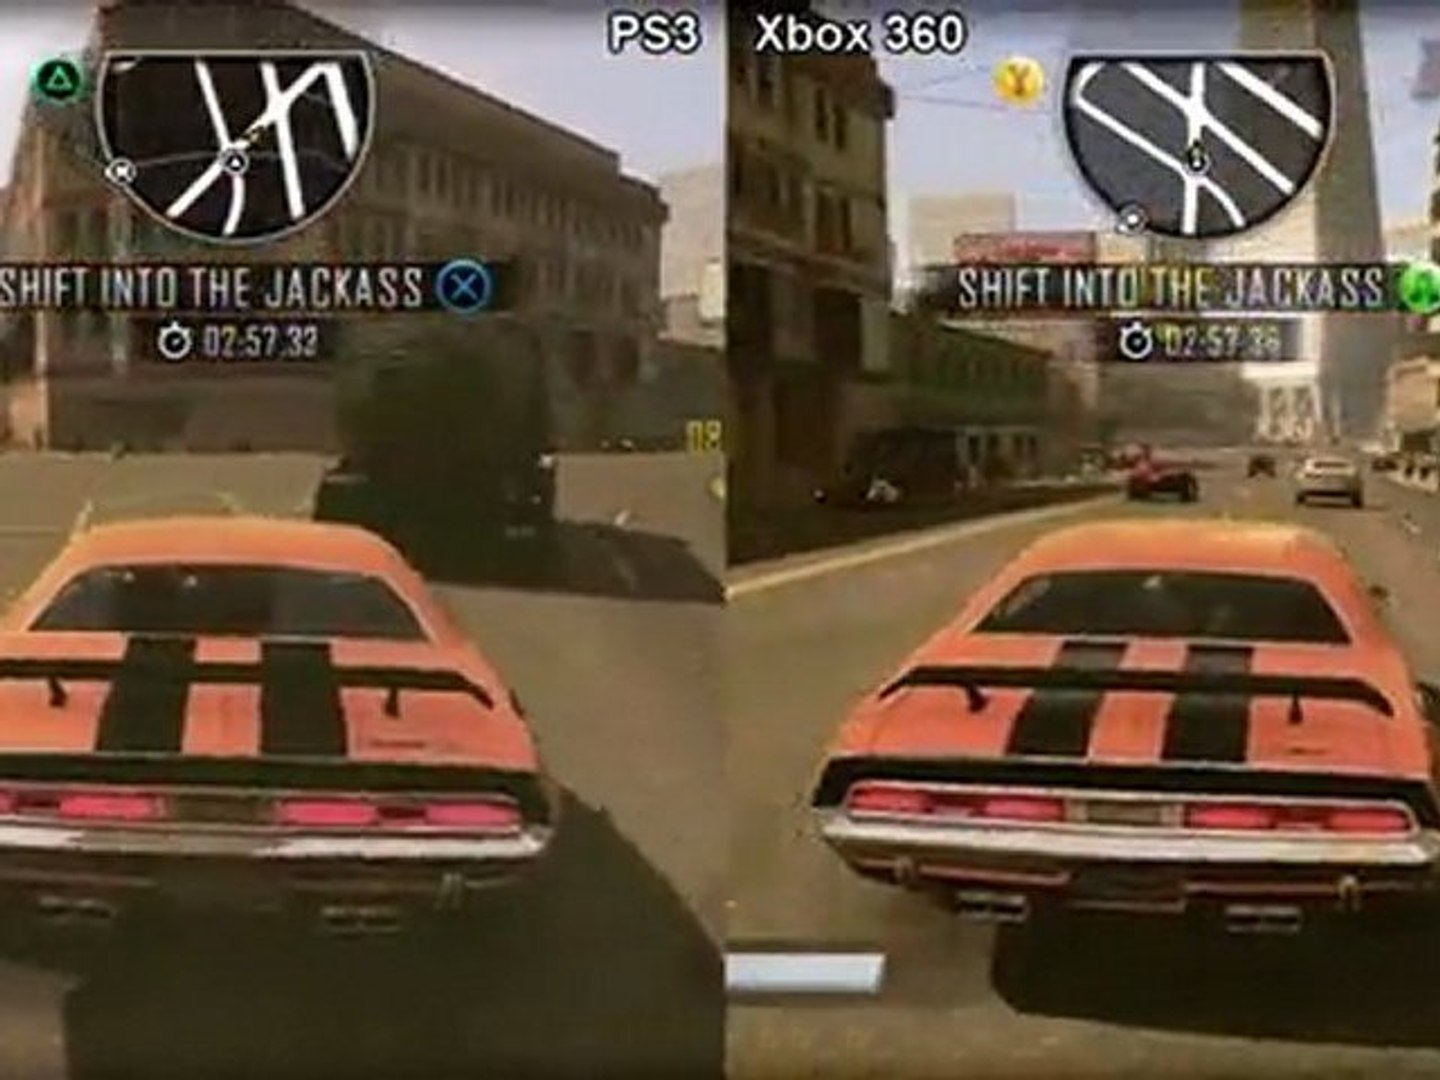 Driver San Francisco Demo Ps3 Vs Xbox 360 Graphics Comparison Video Dailymotion